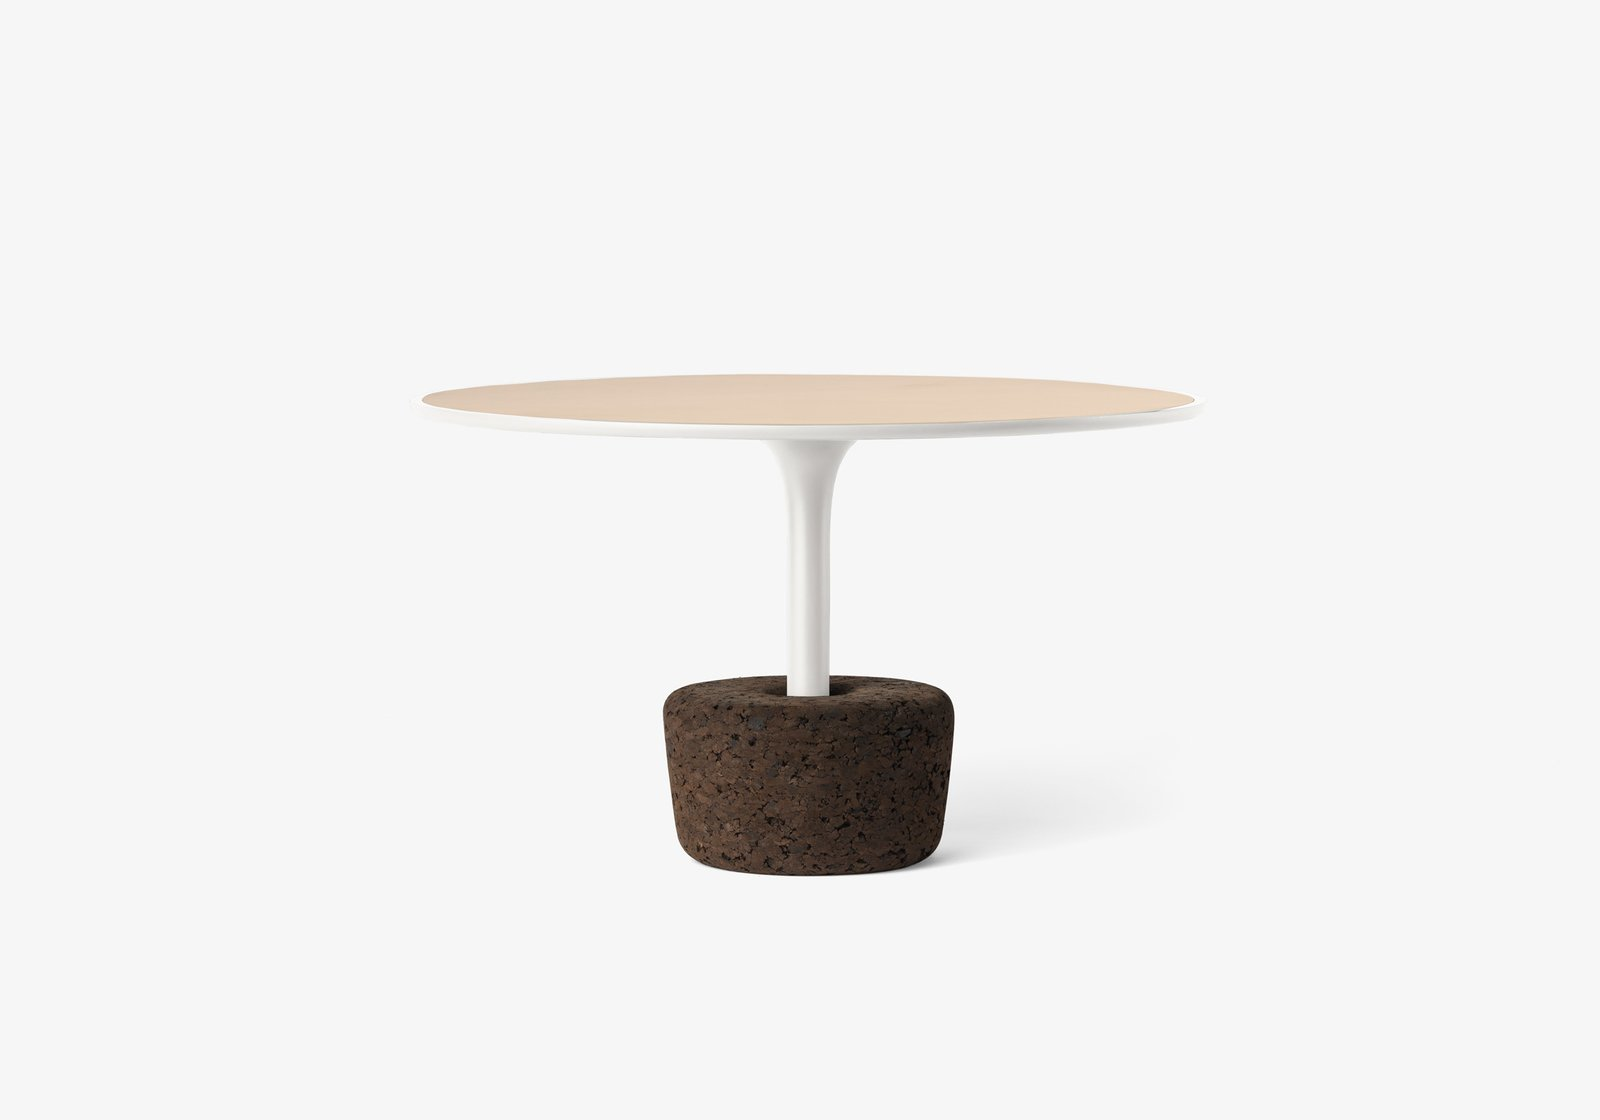 "Flora Wide Tall  FLORA is a set of coffee tables that refers to the plants we offer to the ones we love, so there is a similarity between taking care of plants and taking care of the objects. These versatile tables combine natural materials, with four sizes and six different colored frame finishes and may be used separately or together.  Size  Ø65 x H38 cm / Ø25,6'' x H15''.  Weight  5,8 kg / 12,8 lbs.  Search ""가양동출장안마【Ø1Ø↔3Ø67↔661Ø】⊀후불제⊁가양동출장마사지 가양동콜걸출장안마후기【20대맞춤】가양동콜걸출장마사지 가양동출장샵강추 가양동모텔출장美人가양동출장맛사지후기∠가양동출장안마추천후기 가양동출장여대생"" from Floras"